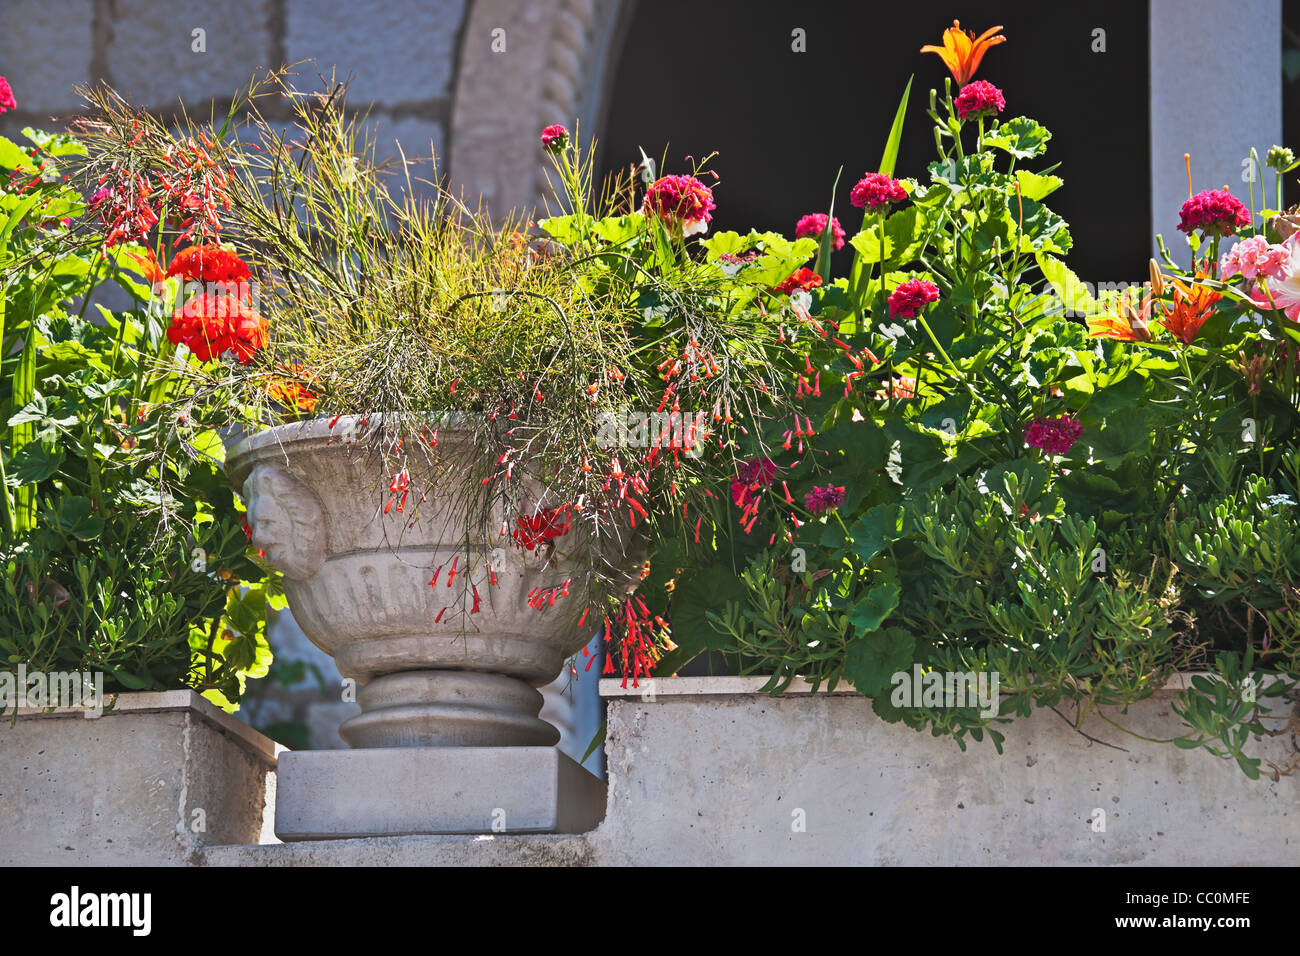 Flowers on a balcony in the old town of Dubrovnik, Dalmatia, Croatia, Europe Stock Photo